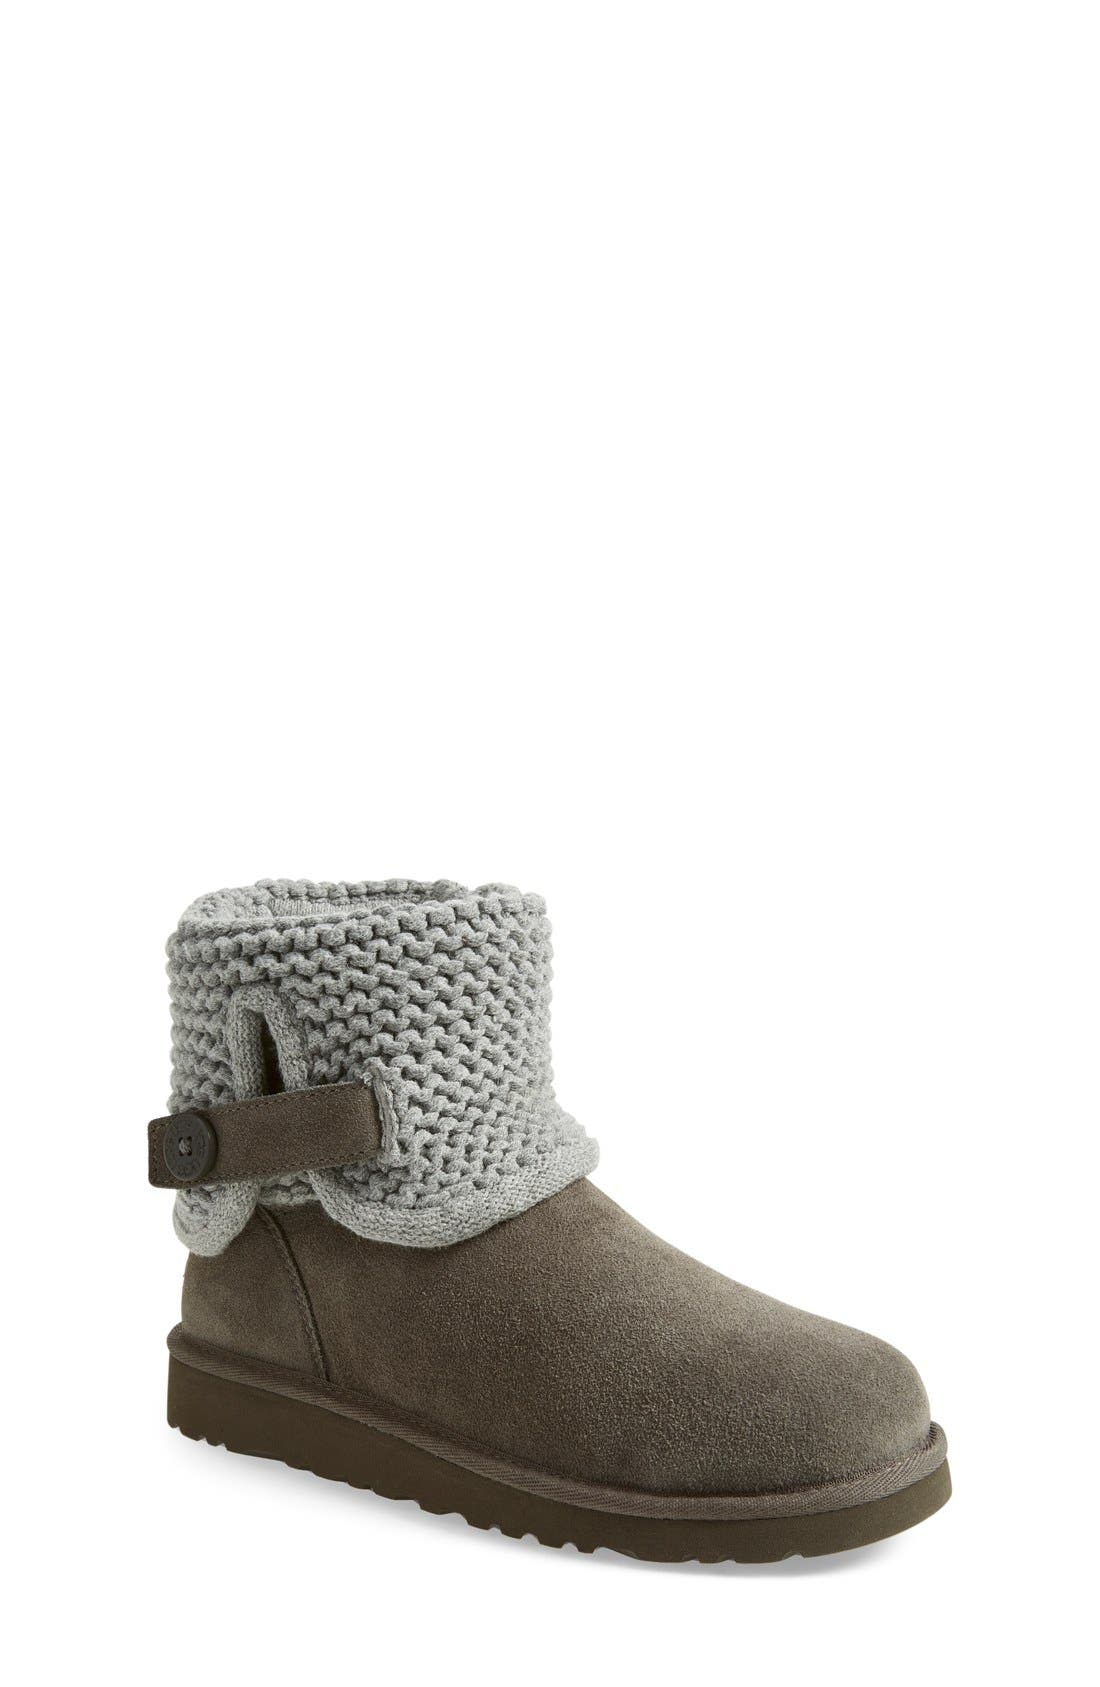 Main Image - UGG® Darrah Purl Knit Cuff Boot (Little Kid & Big Kid)